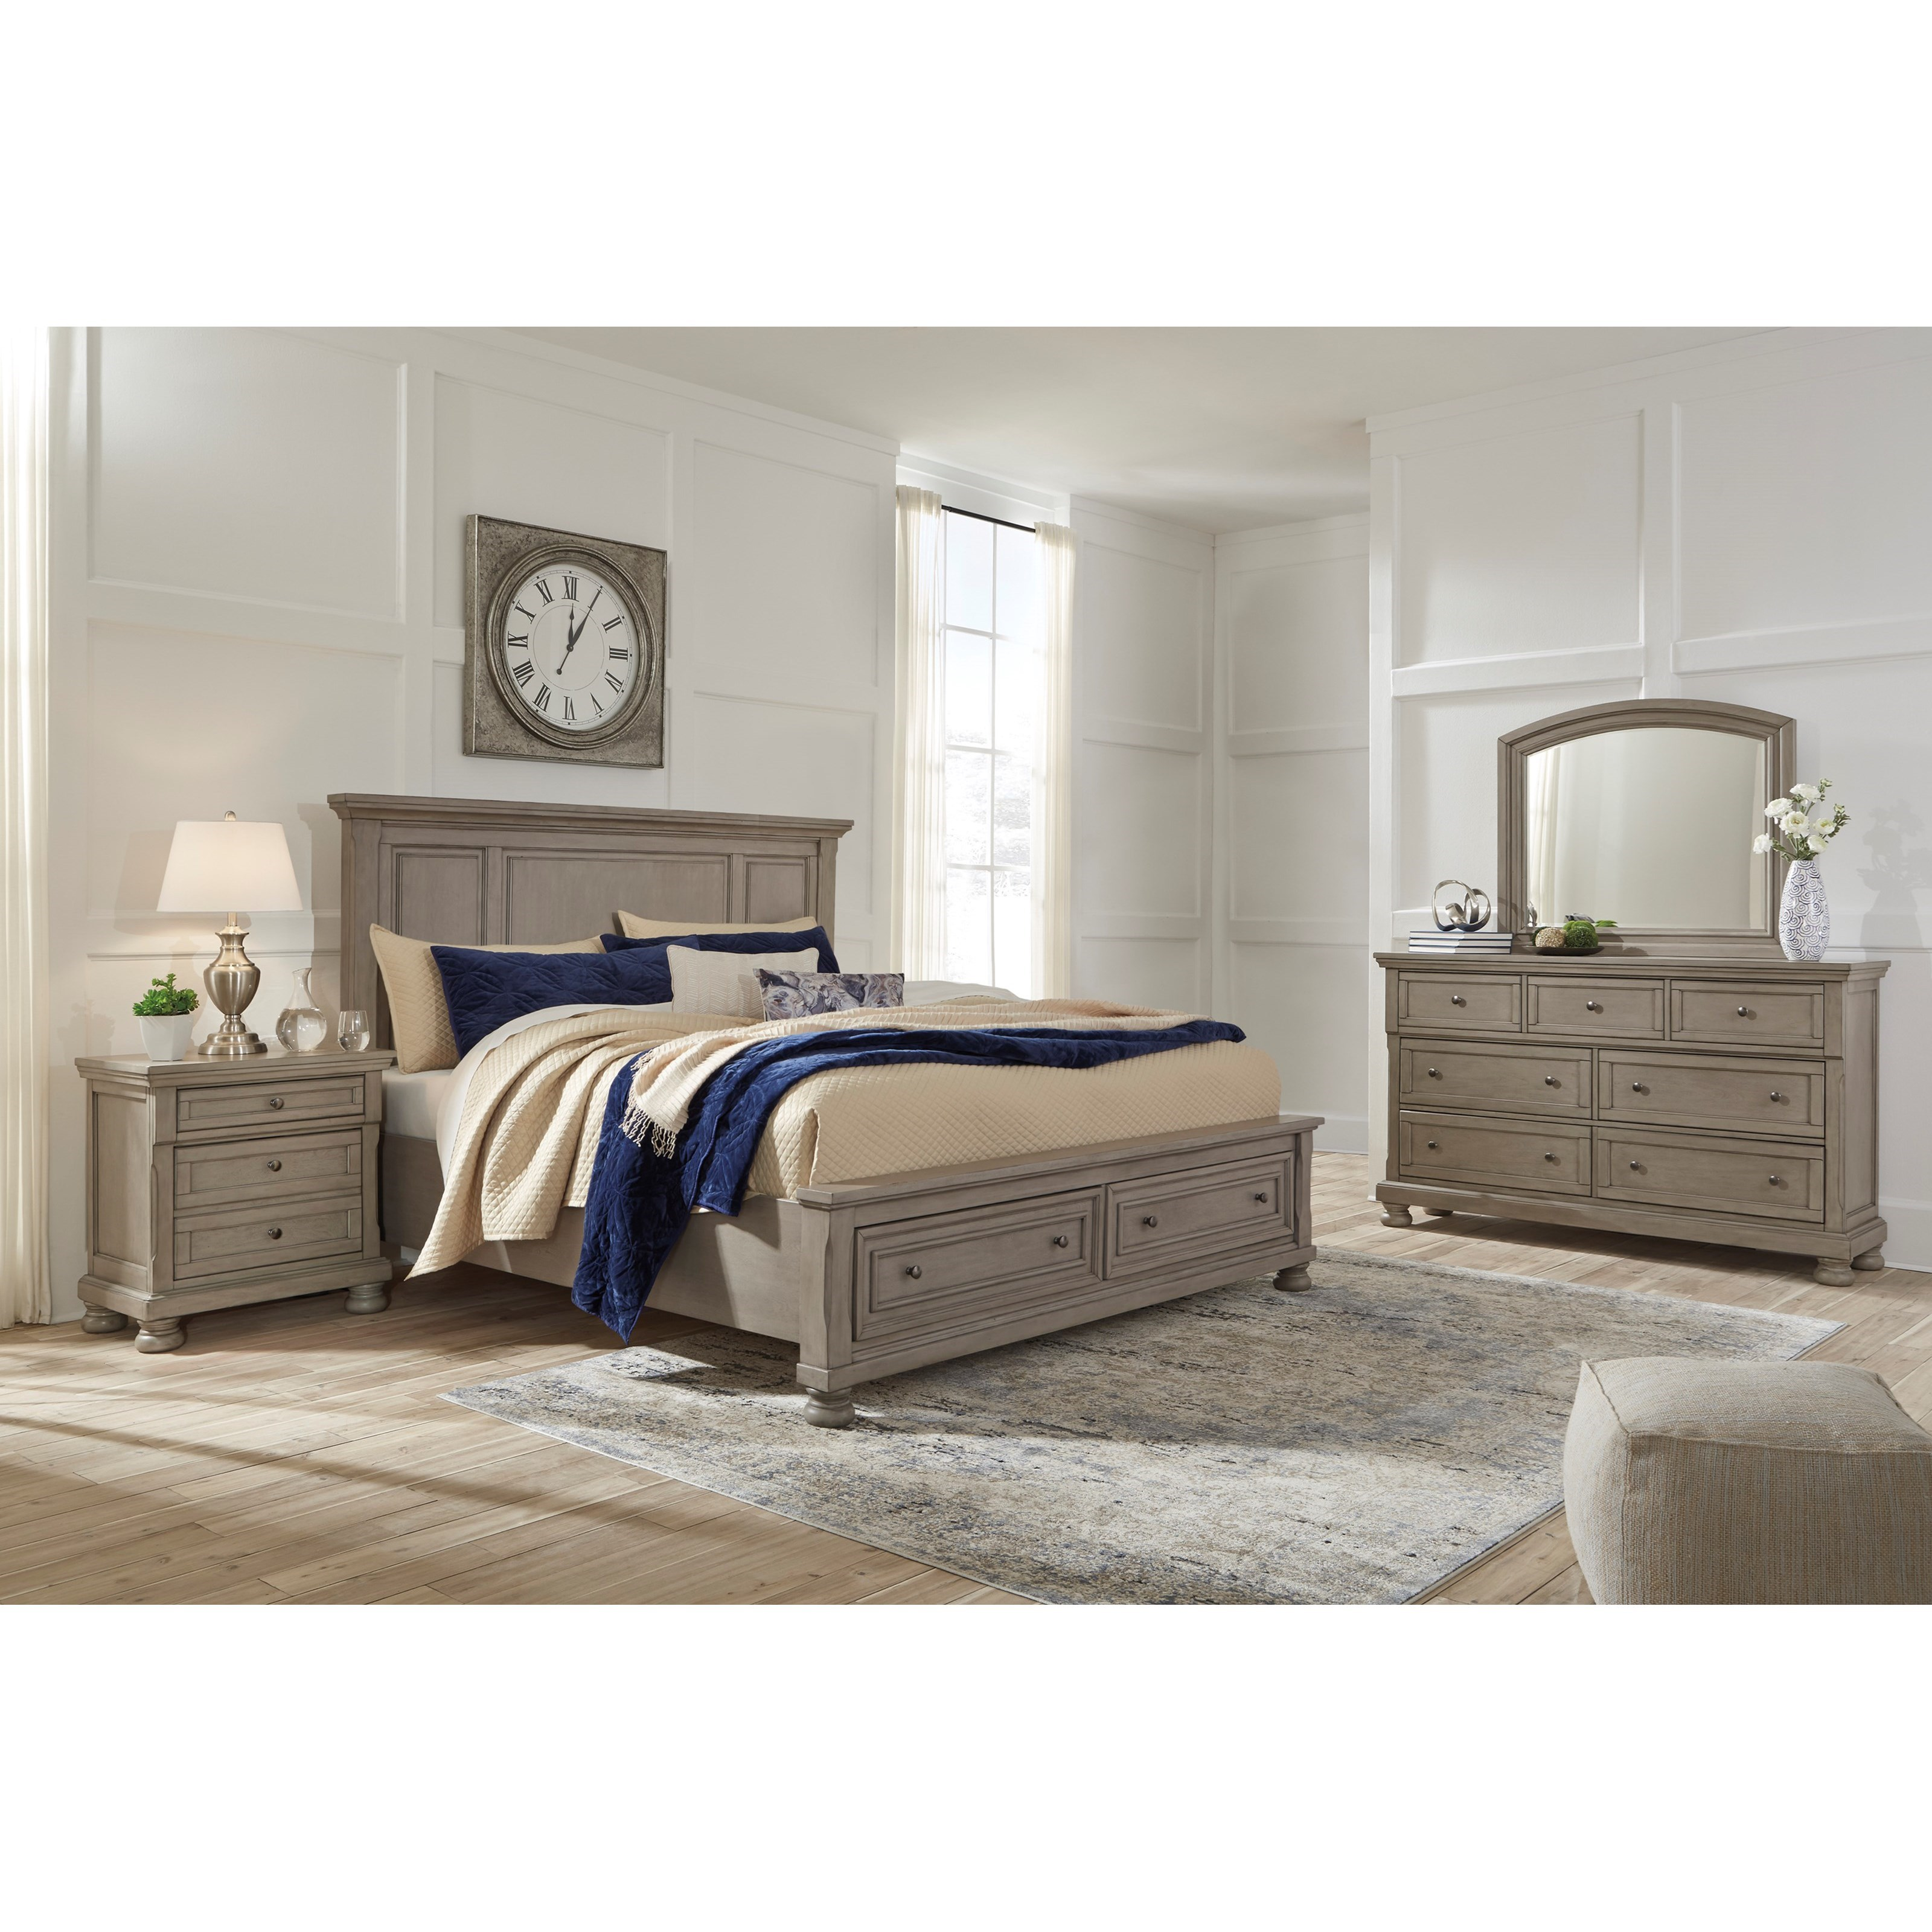 Lettner California King Bedroom Group by Ashley (Signature Design) at Johnny Janosik